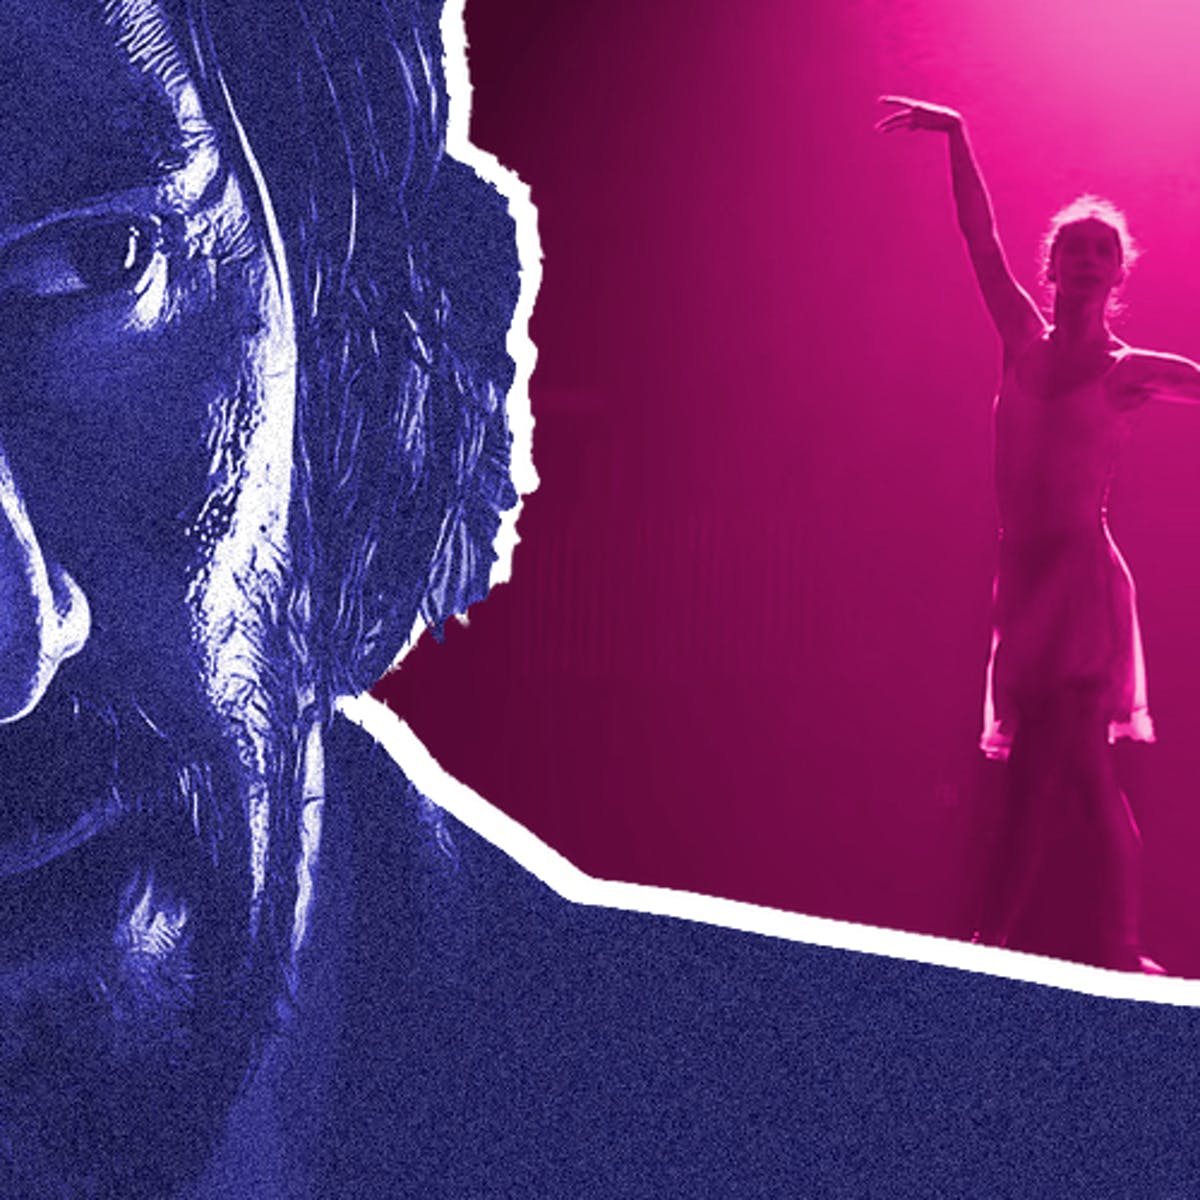 John Wick 3': Why Director Chad Stahelski Is Obsessed With Ballet